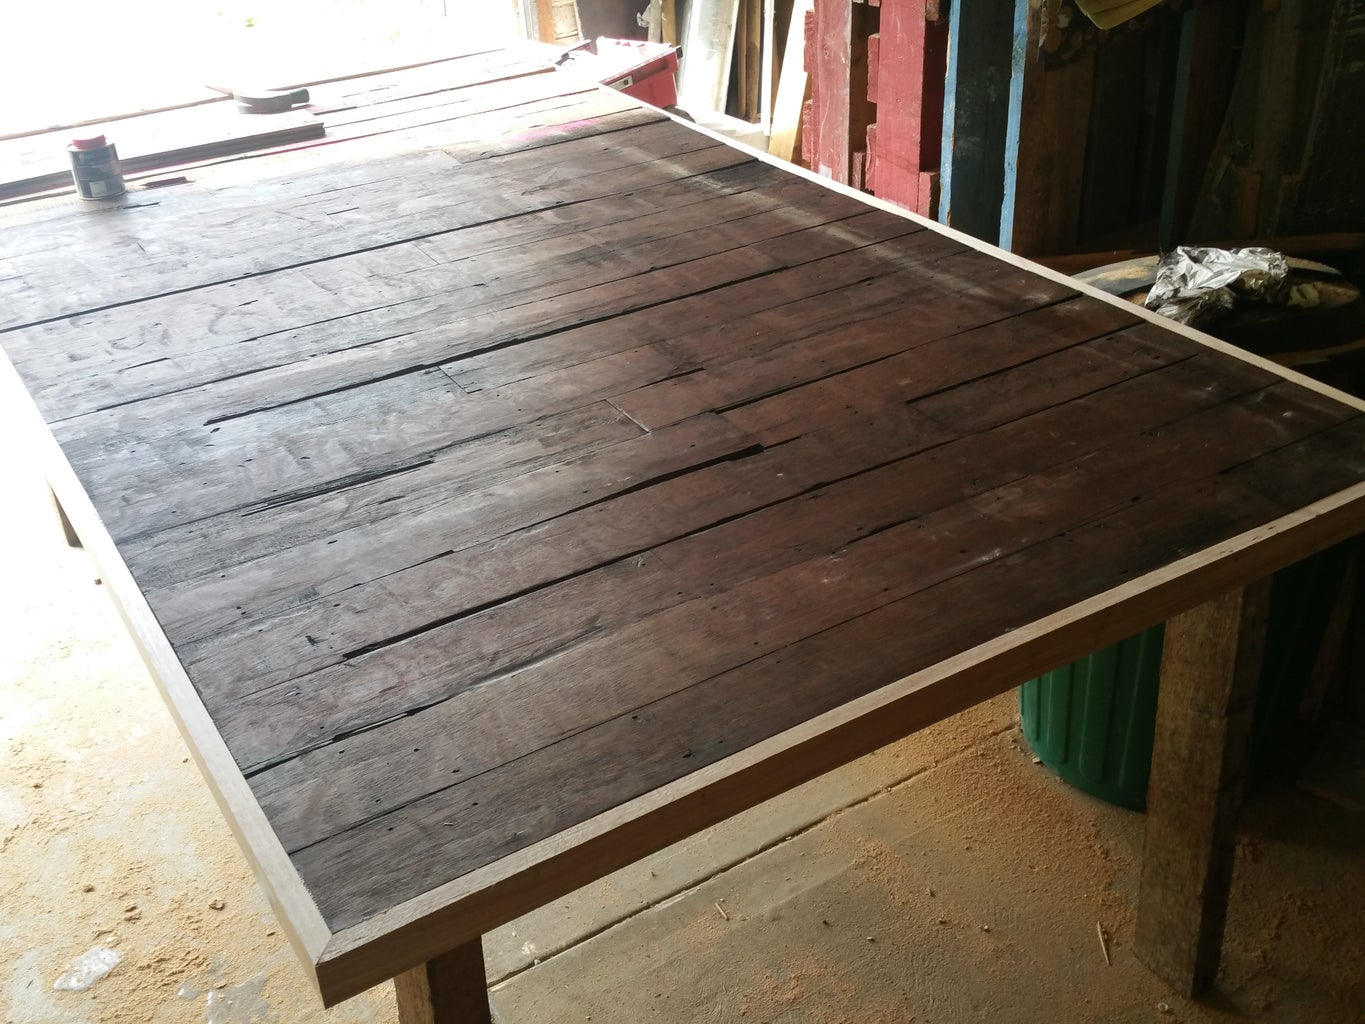 Staining Continued